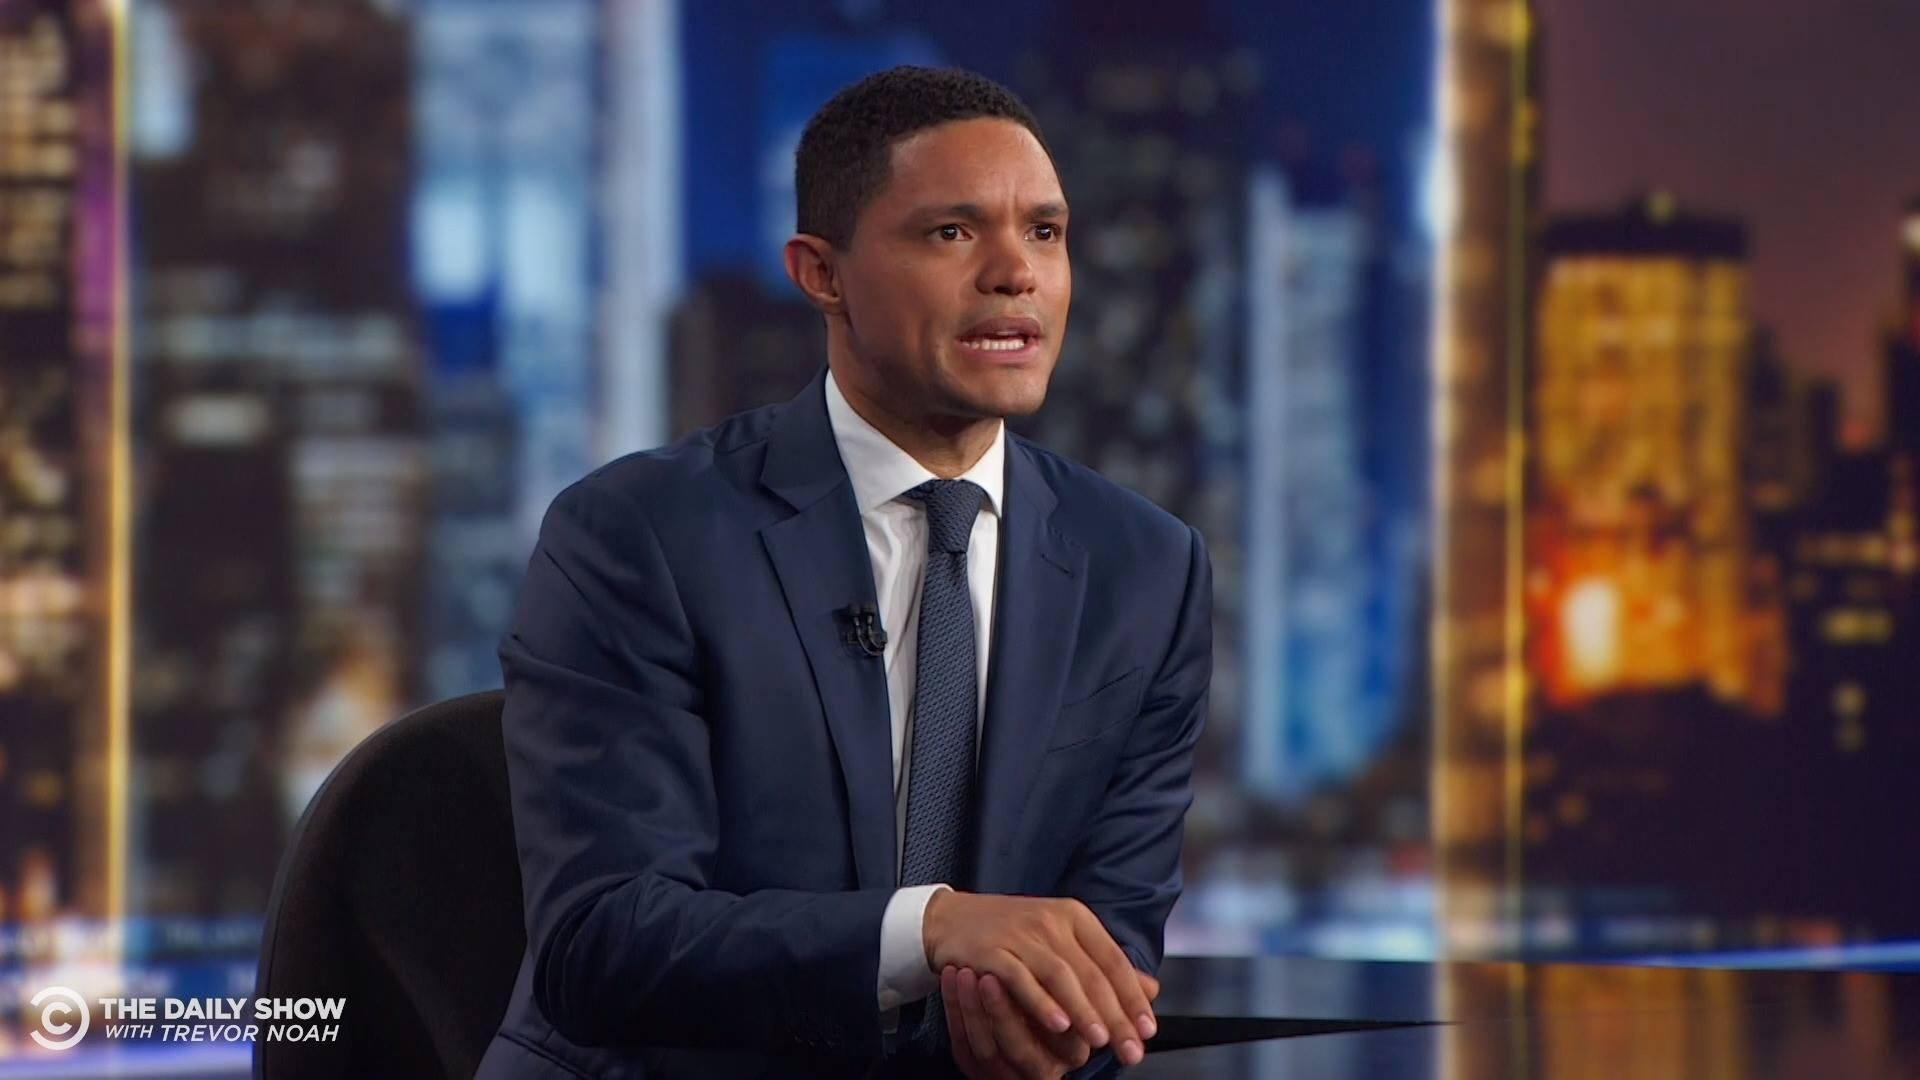 WATCH What Happened to Trevor Noah's Best Friend Teddy from His Book ...